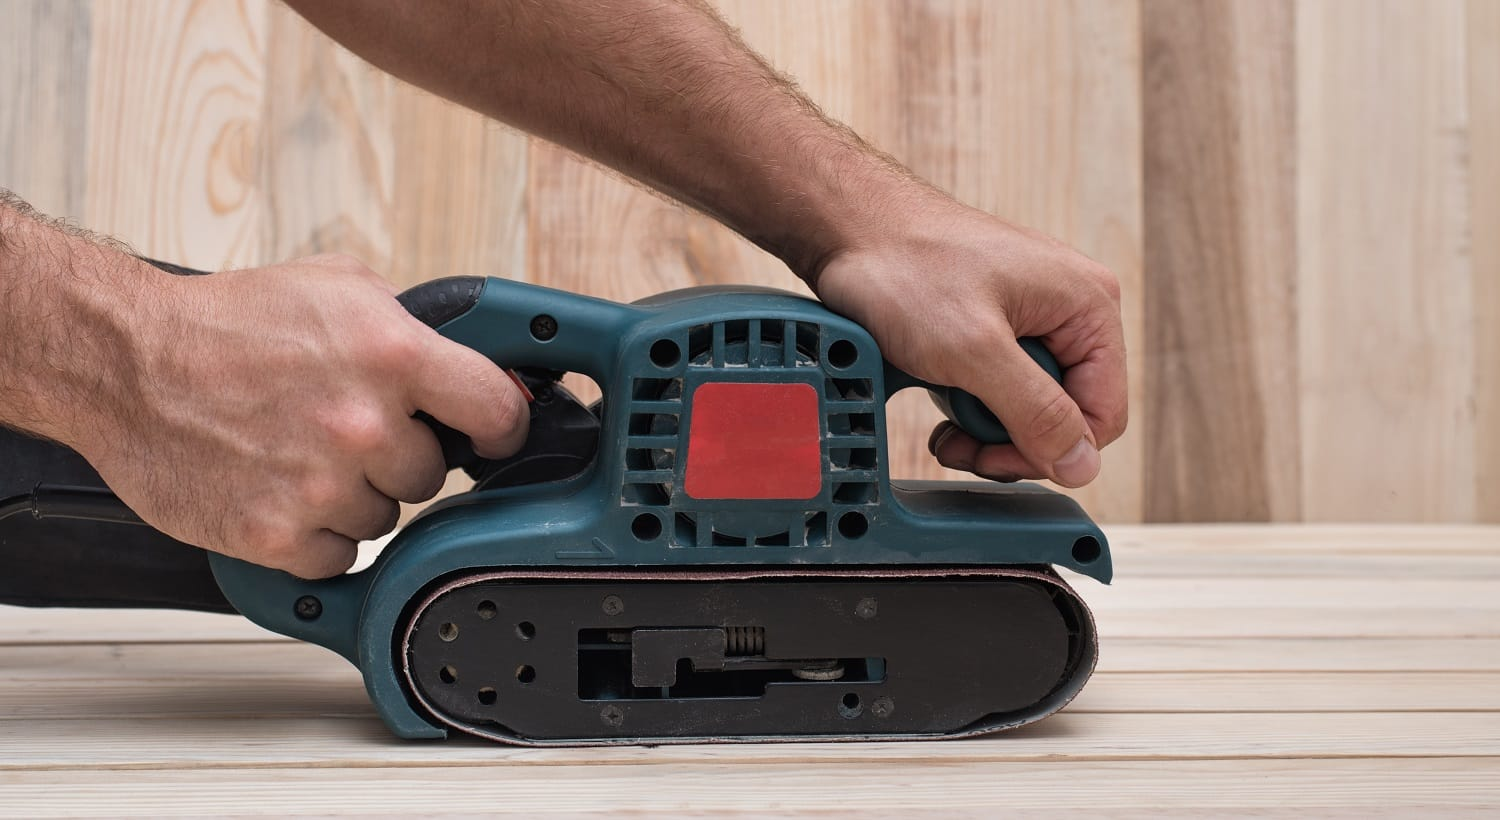 Electric belt sander, sanding machine in male hand. Processing of workpiece on light brown wooden table. Side view, close up